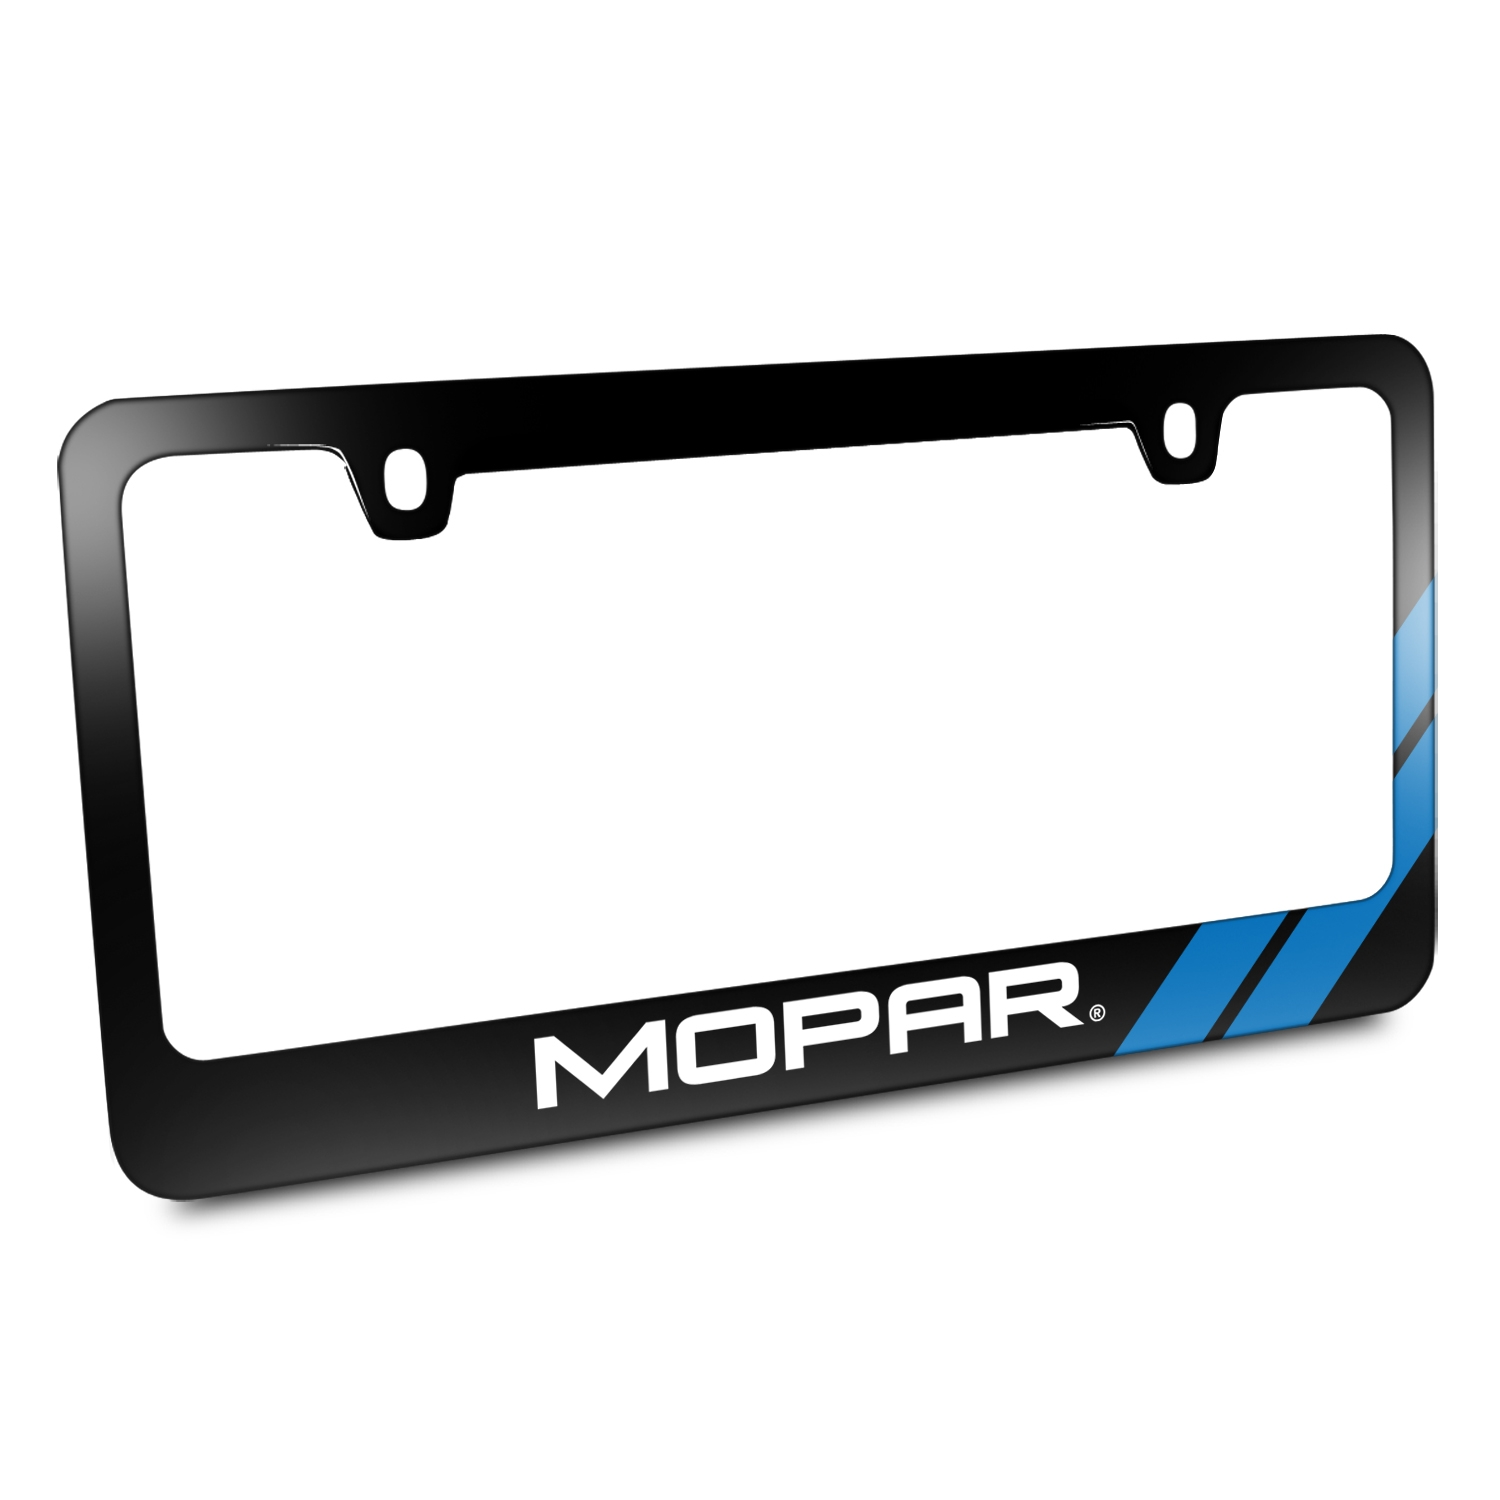 Moper Blue Stripe Black Metal License Plate Frame